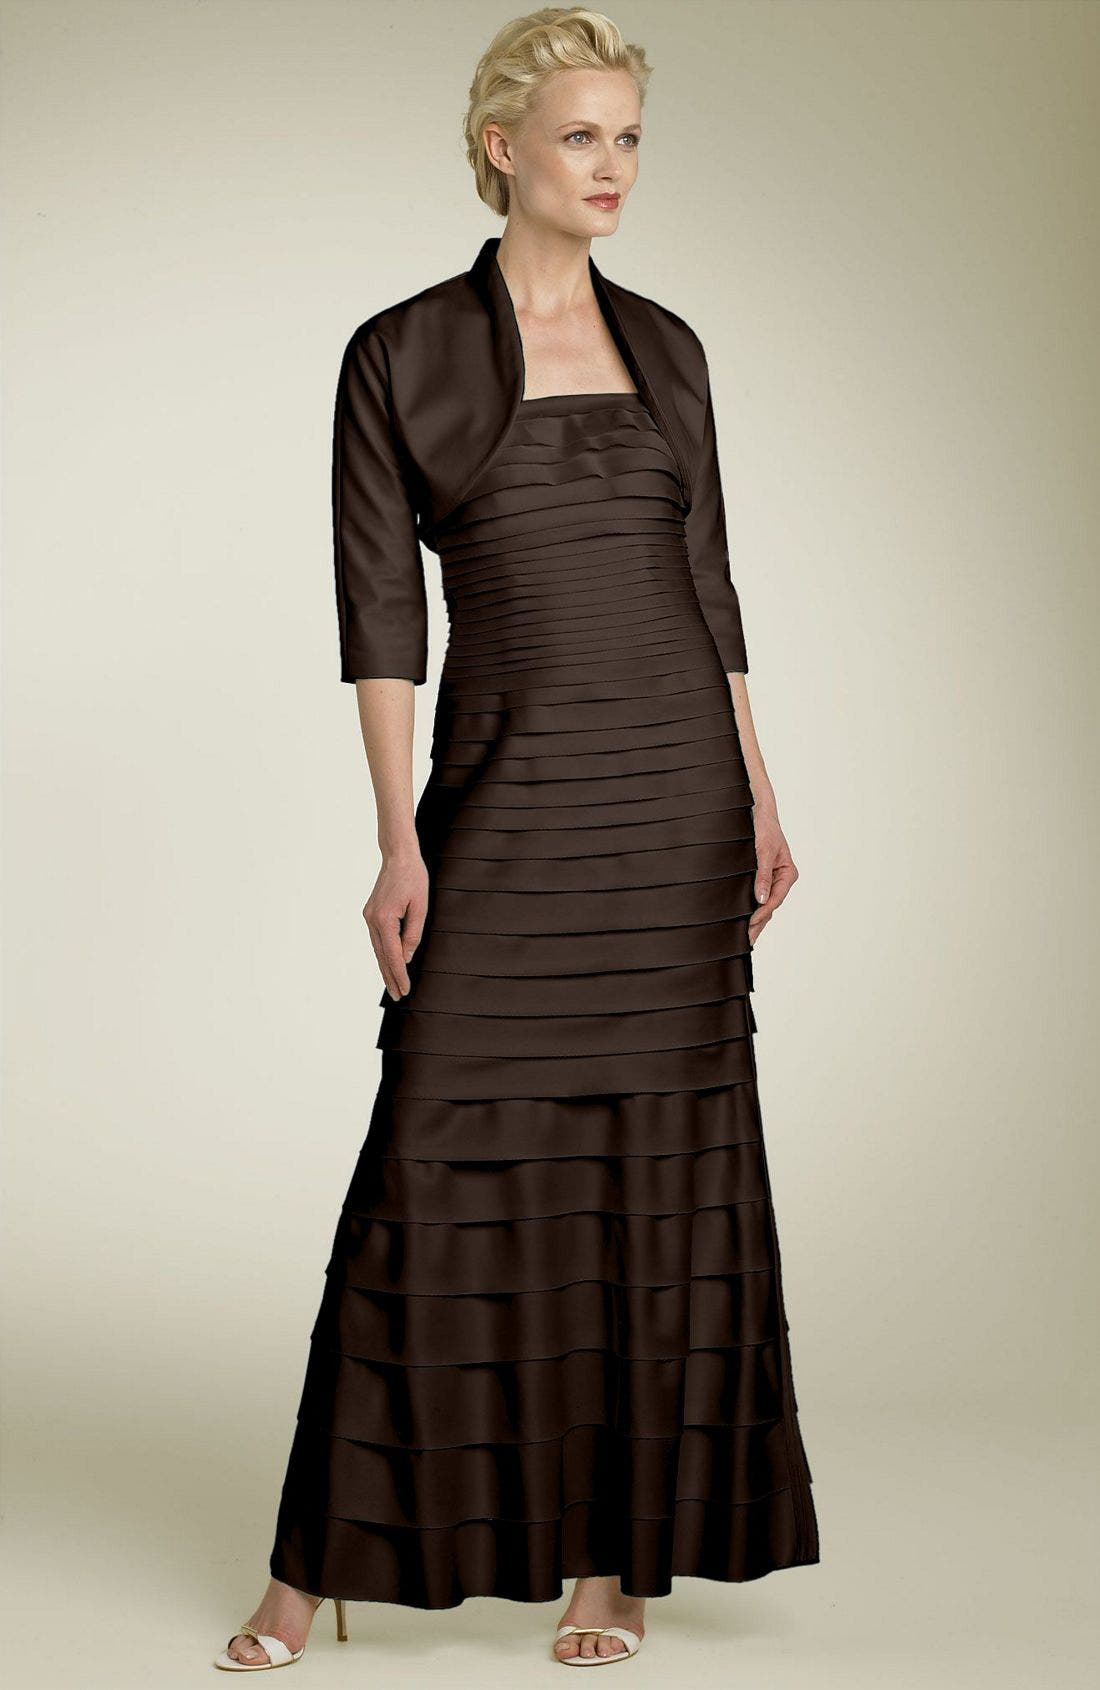 Alternate Image 1 Selected - JS Collections Laser Cut Dress & Bolero